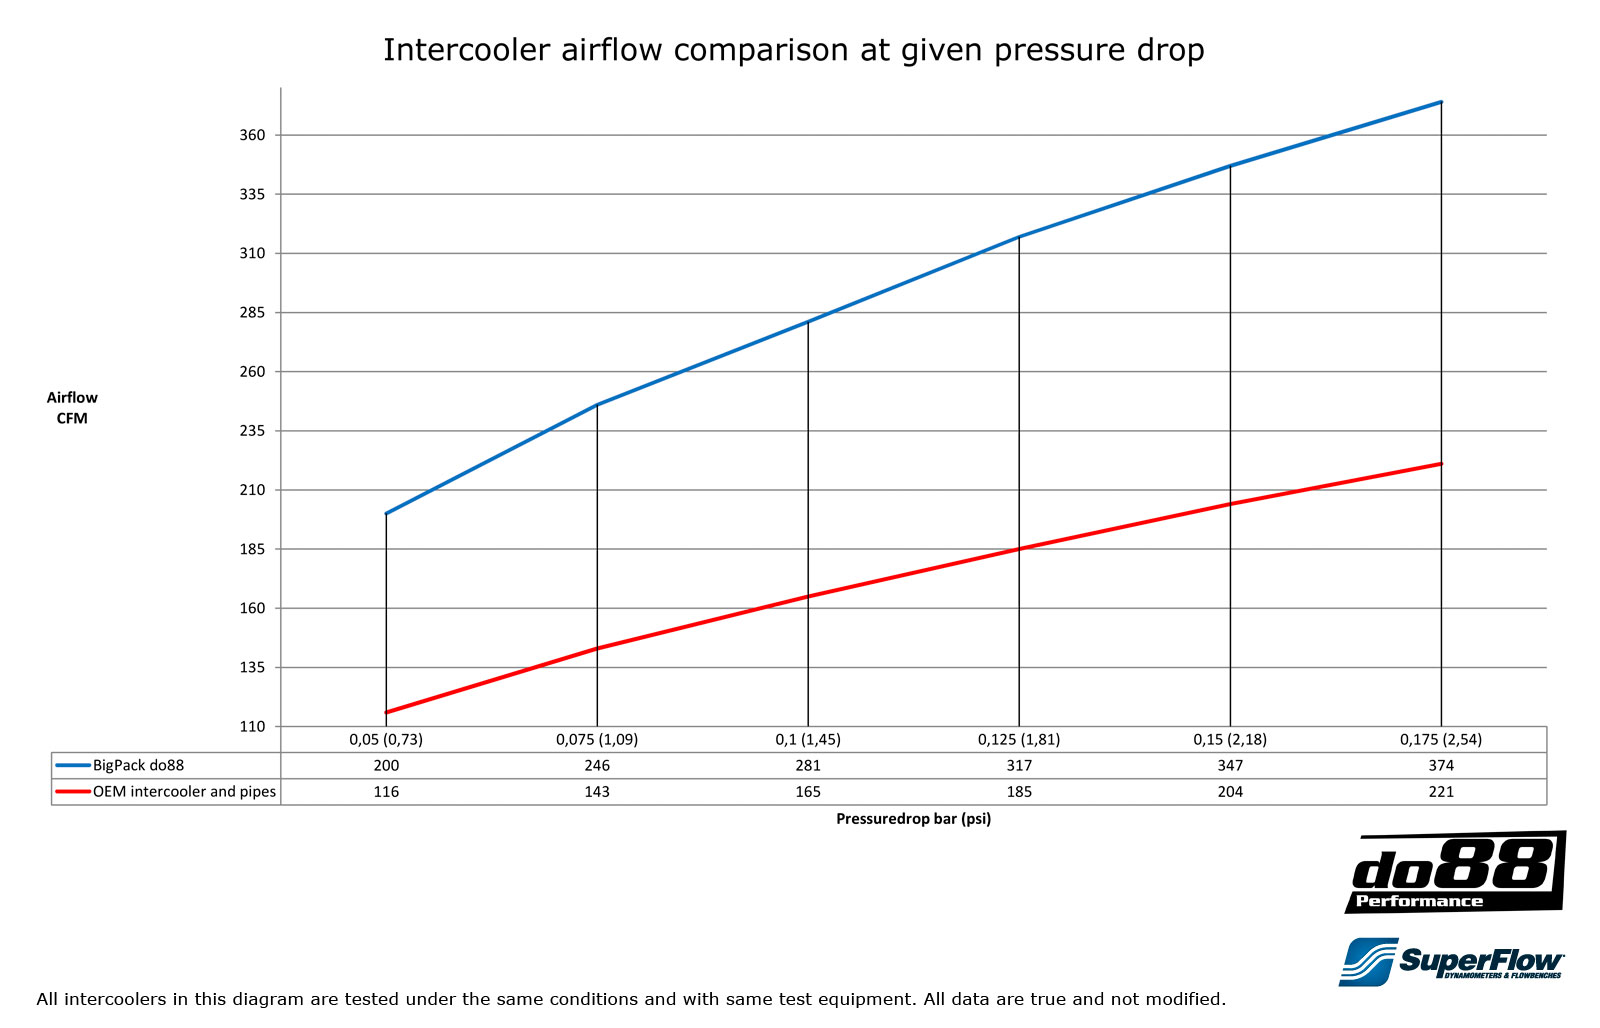 This diagram shows the charge air flow at different pressure drops of do88 bigpack compared to oem intercooler and pipes